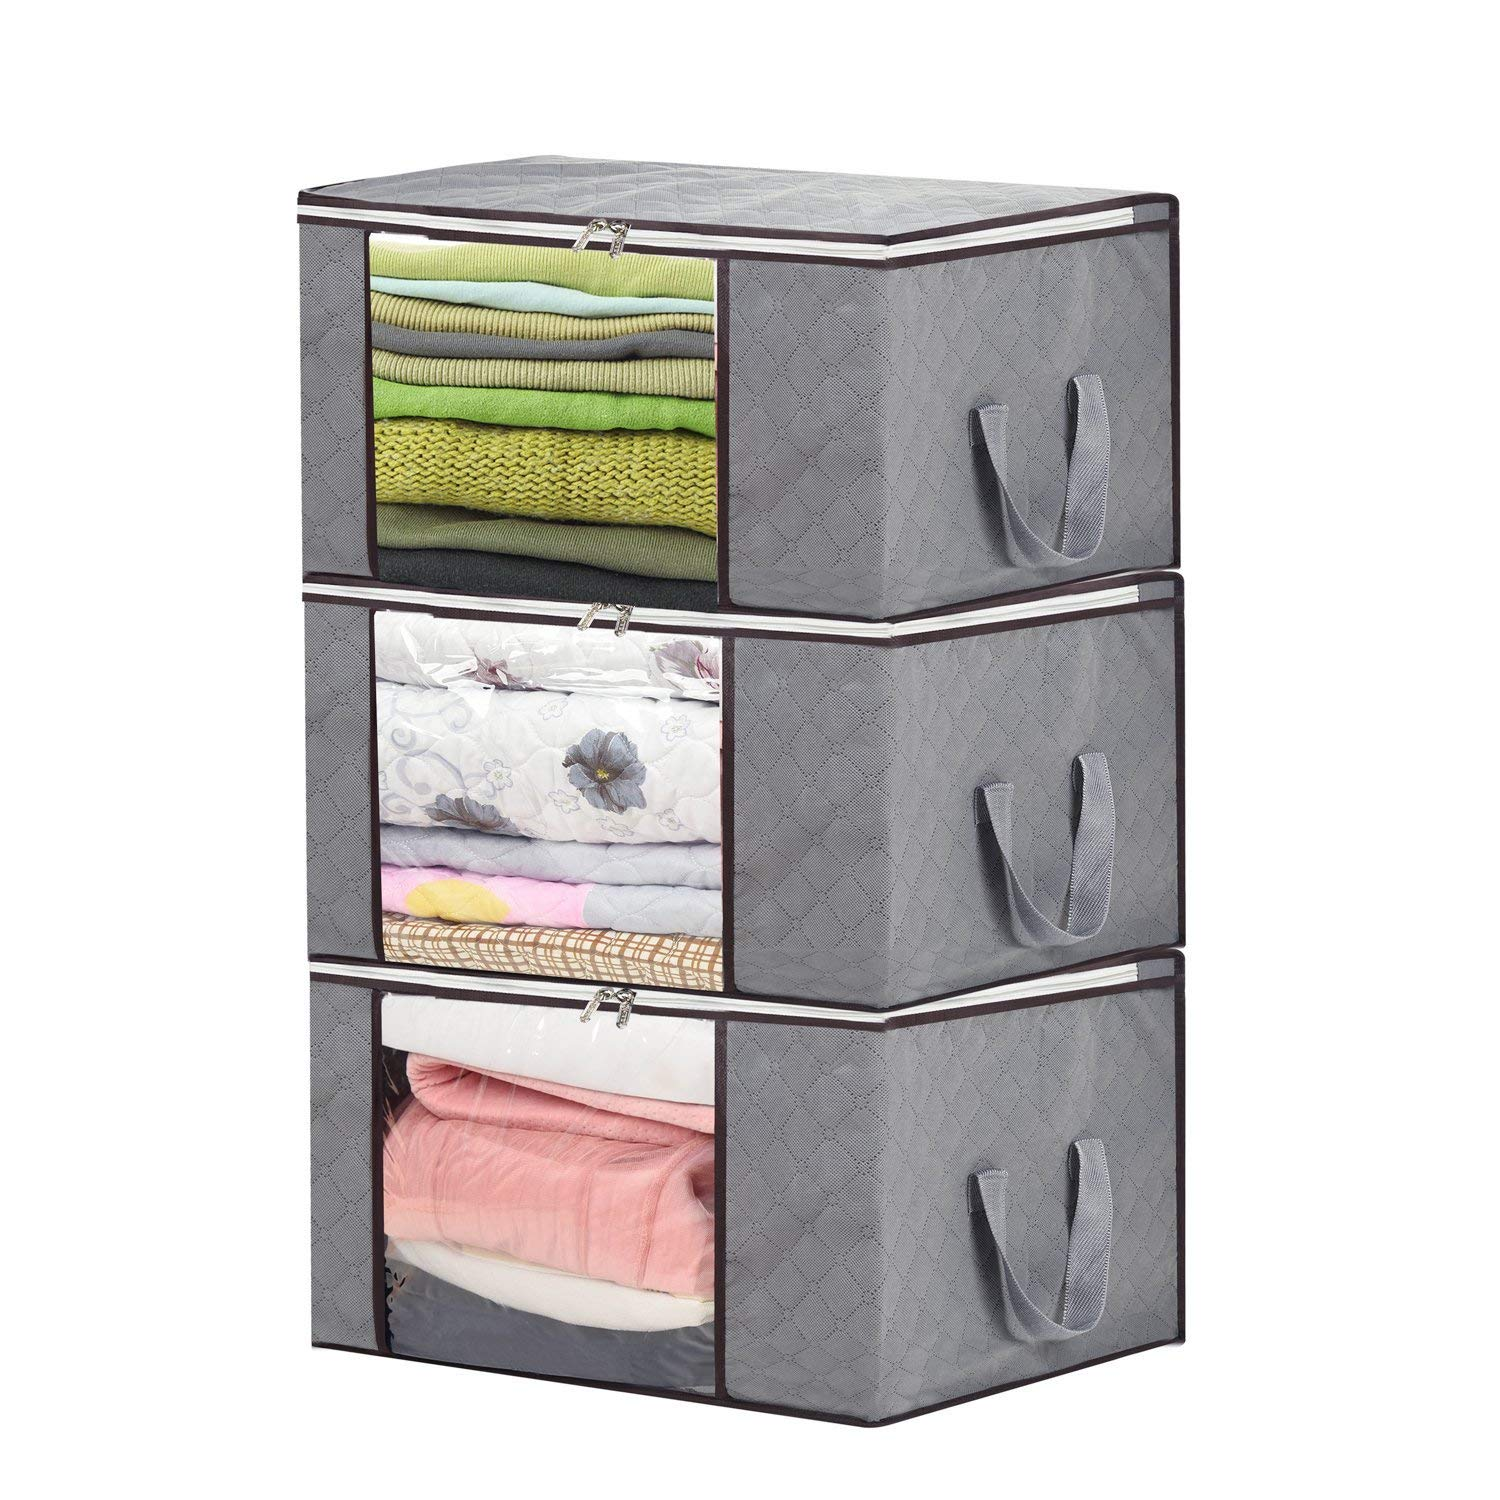 Teemour Foldable Storage Bag Organizers, Large Clear Window & Carry Handles, Great for Clothes, Blankets, Closets, Bedrooms